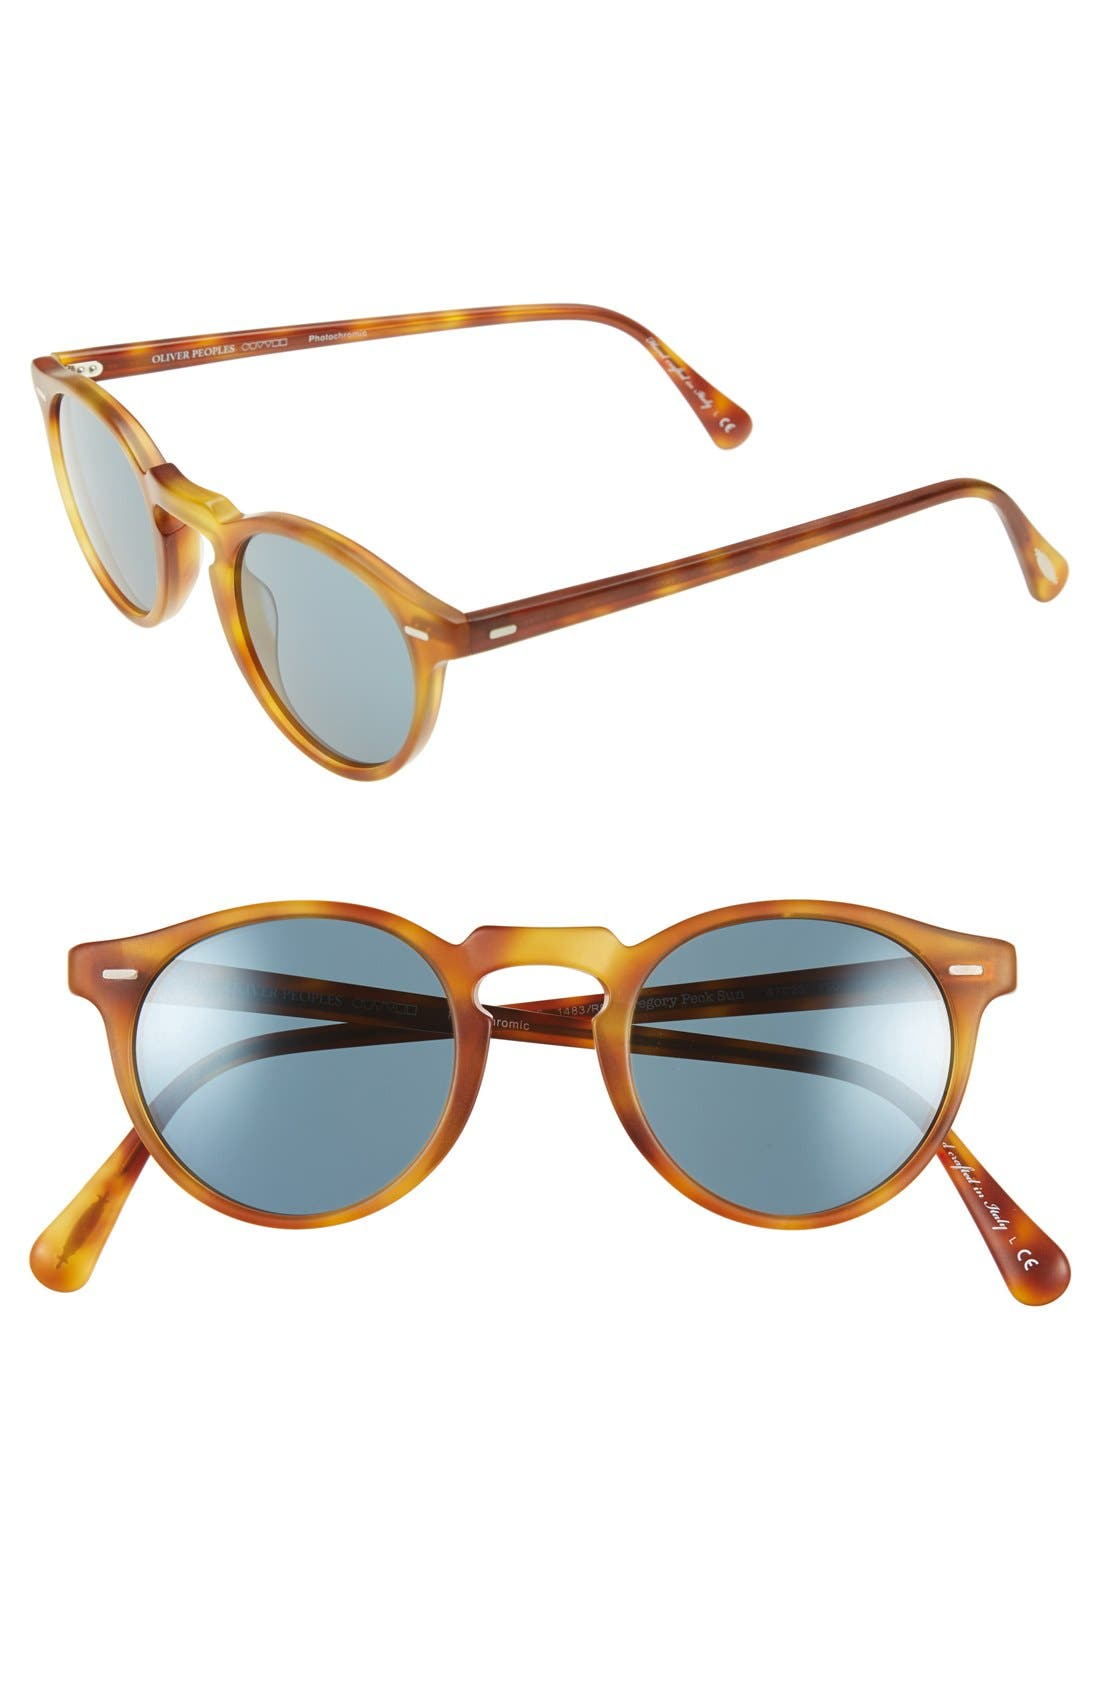 Alternate Image 1 Selected - Oliver Peoples 'Gregory Peck' 47mm Retro Sunglasses